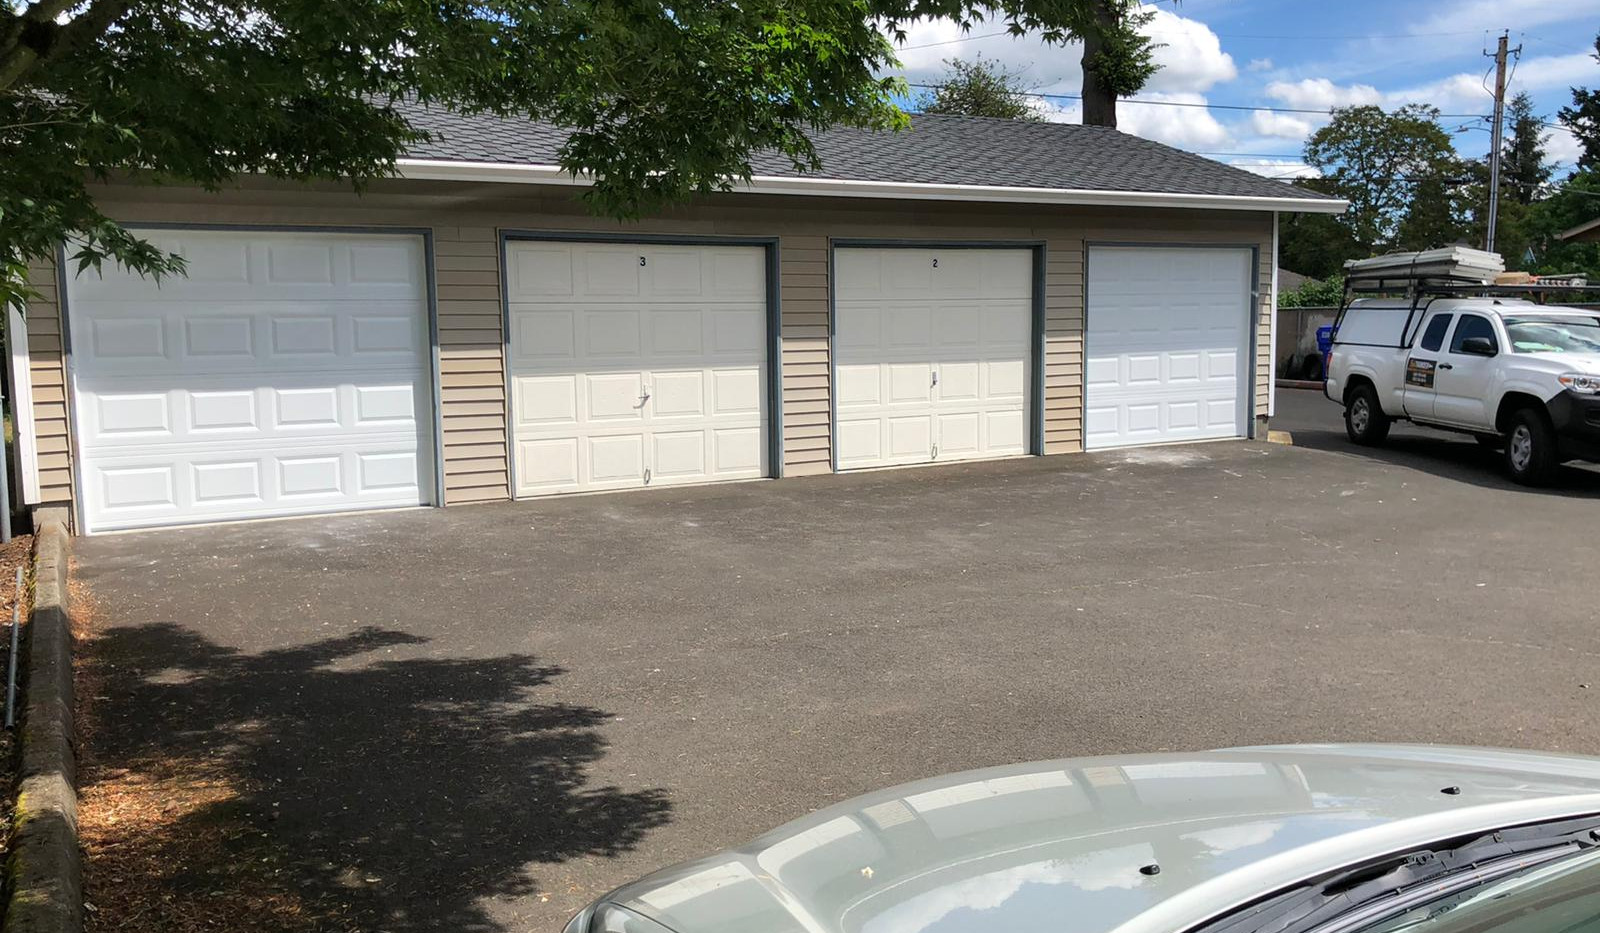 2 single car garage door installations